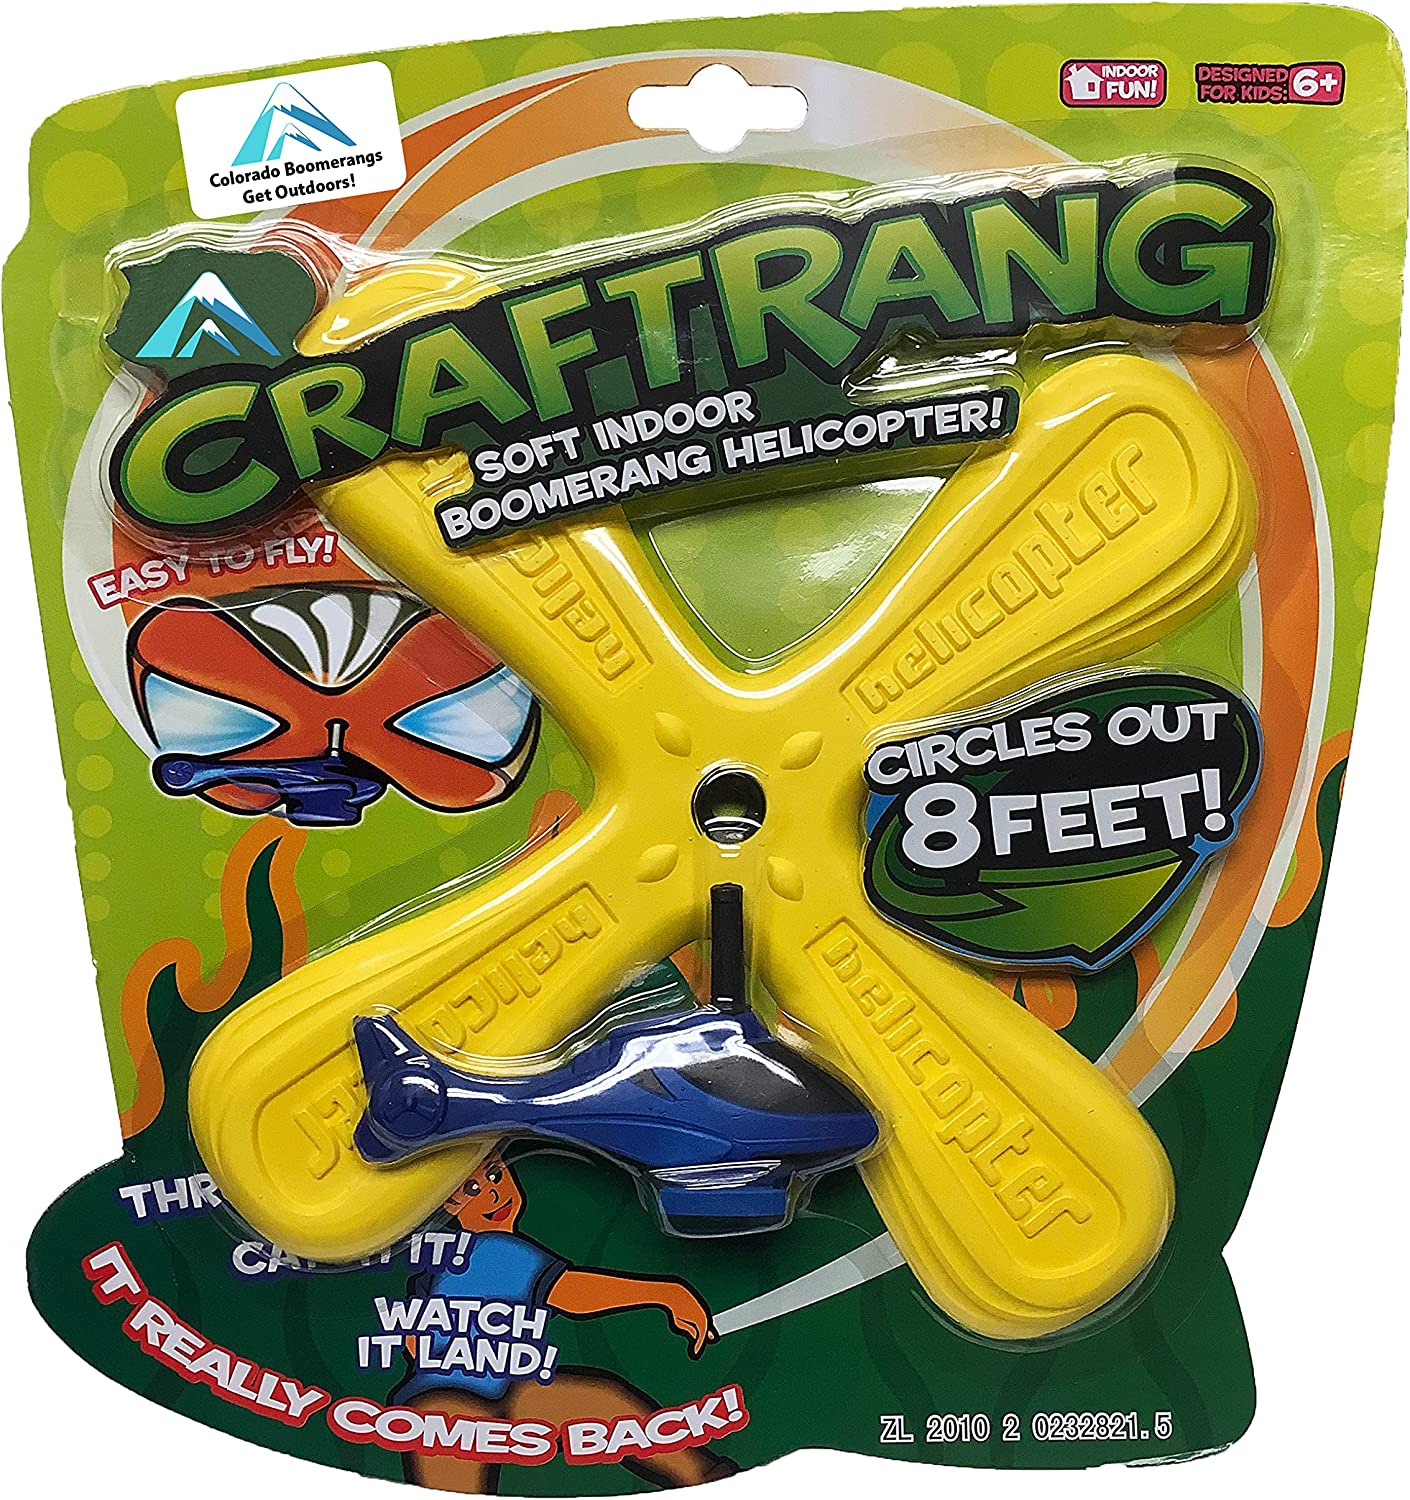 Craftrang Helicopter Boomerang - a Helicopter That Boomerangs